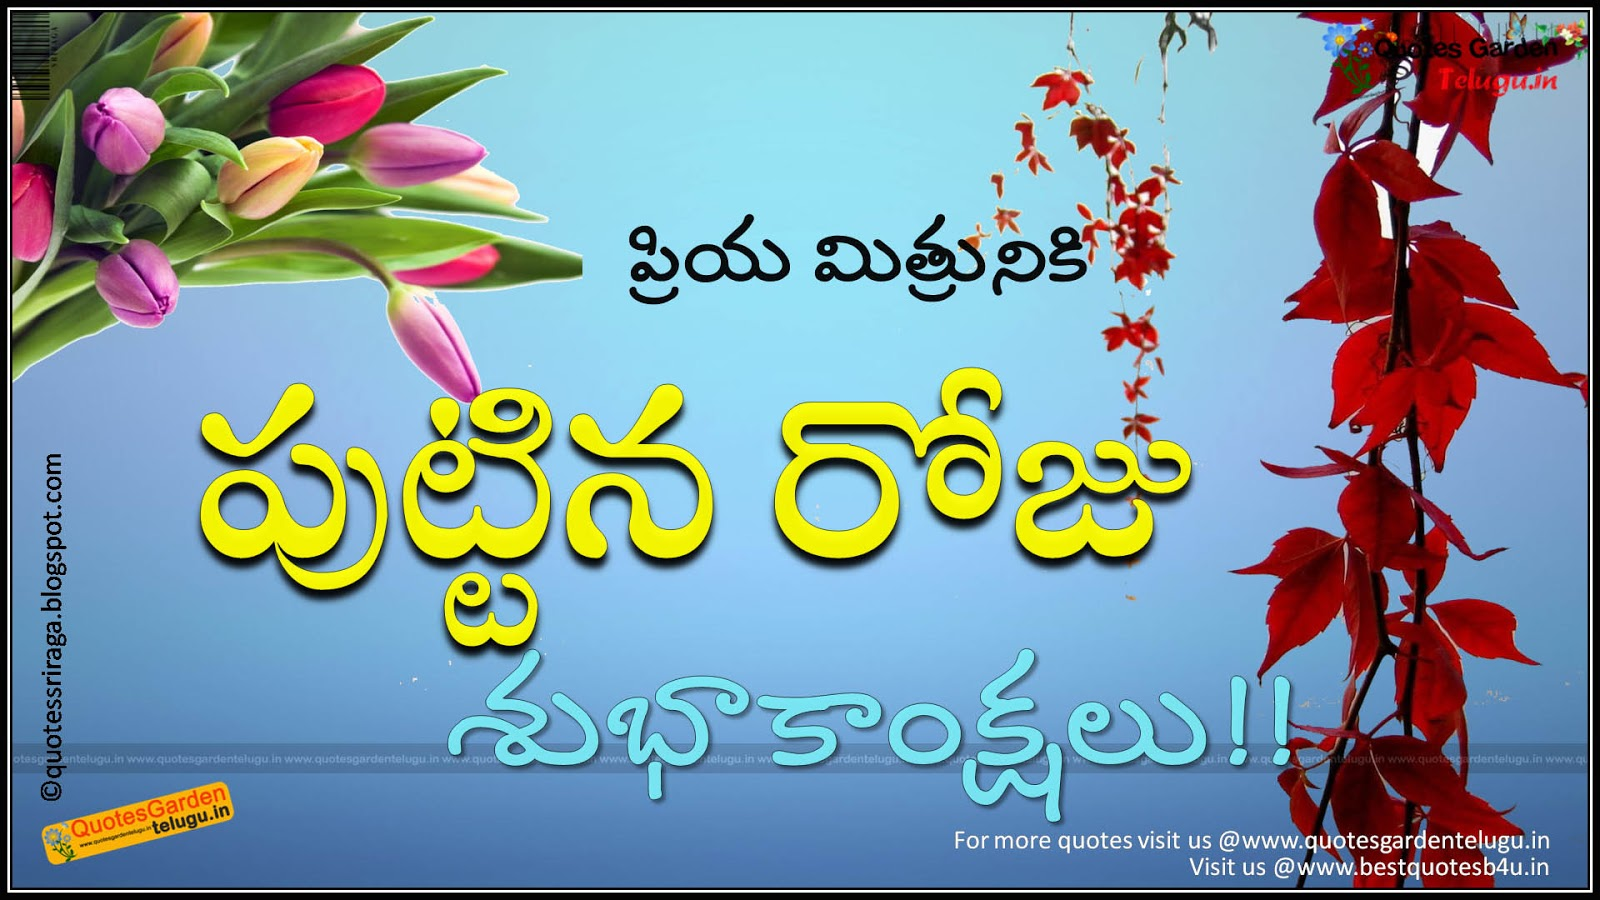 Telugu Birthday Greetings Wishes For Friends Quotes Garden Telugu